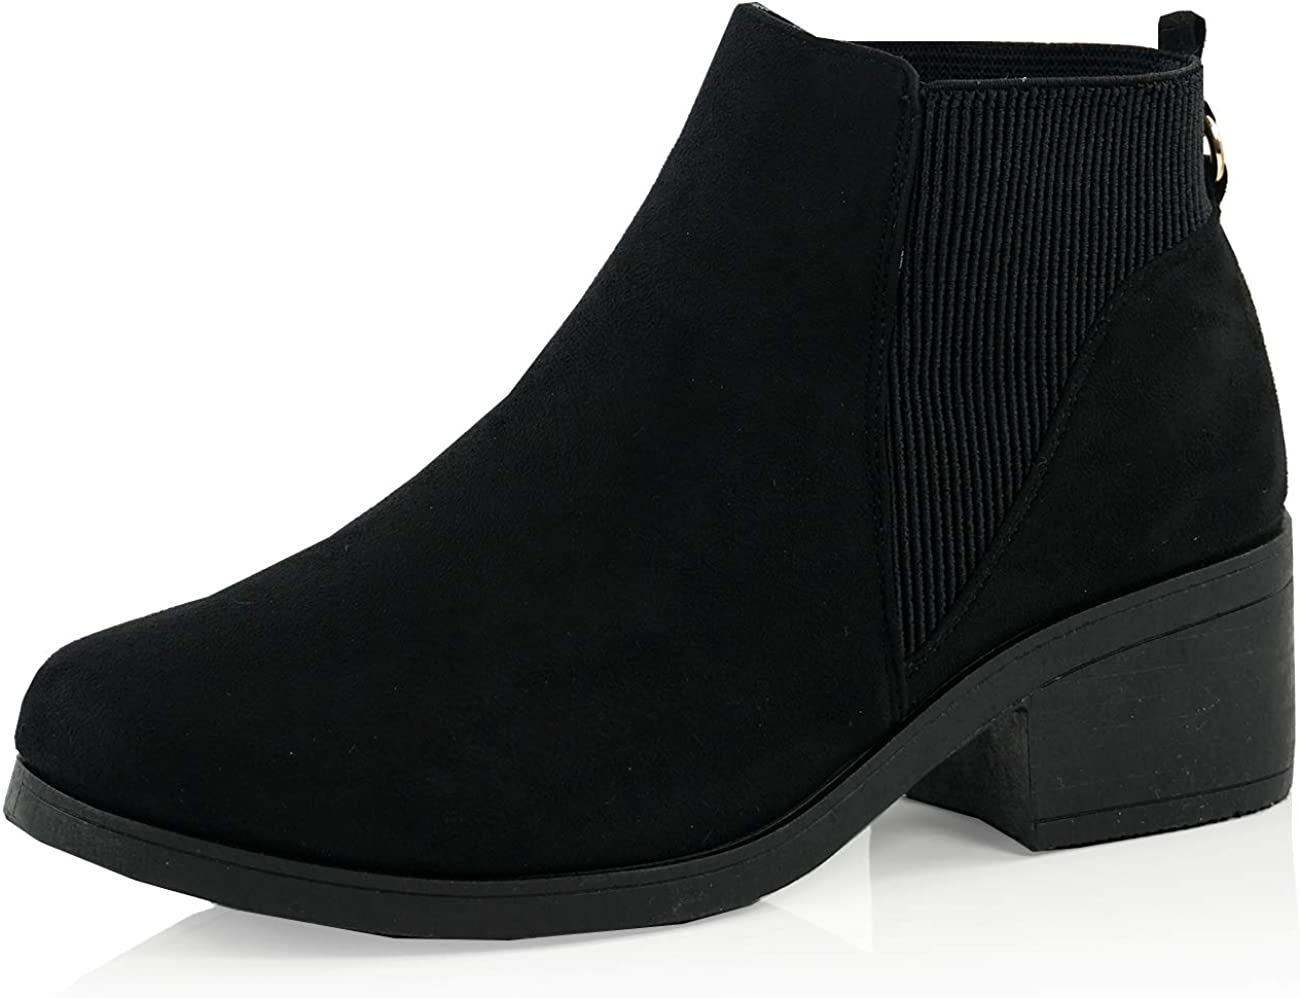 Womens Chelsea Boots Ladies Ankle Boot